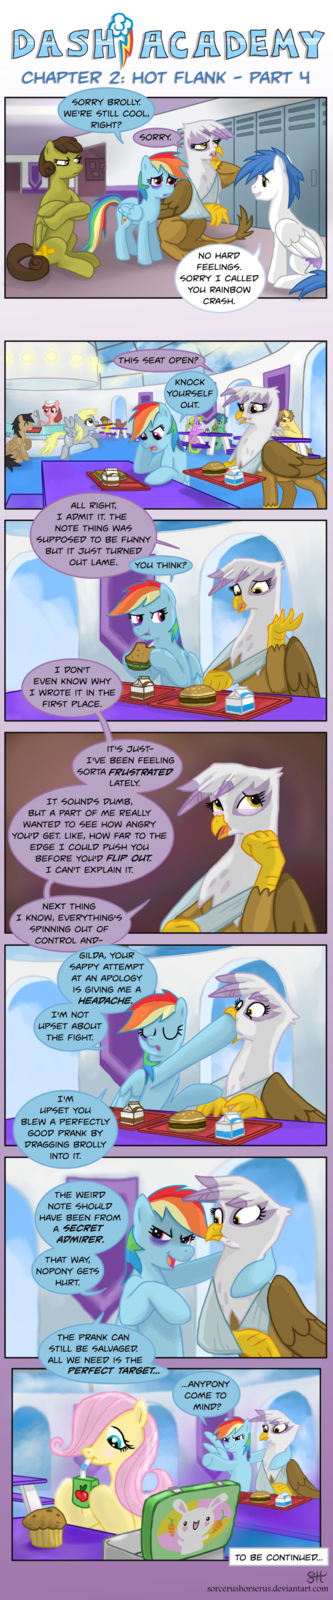 dash_academy_2_hot_flank_part4_by_sorcerushorserus-d49eg5a.png